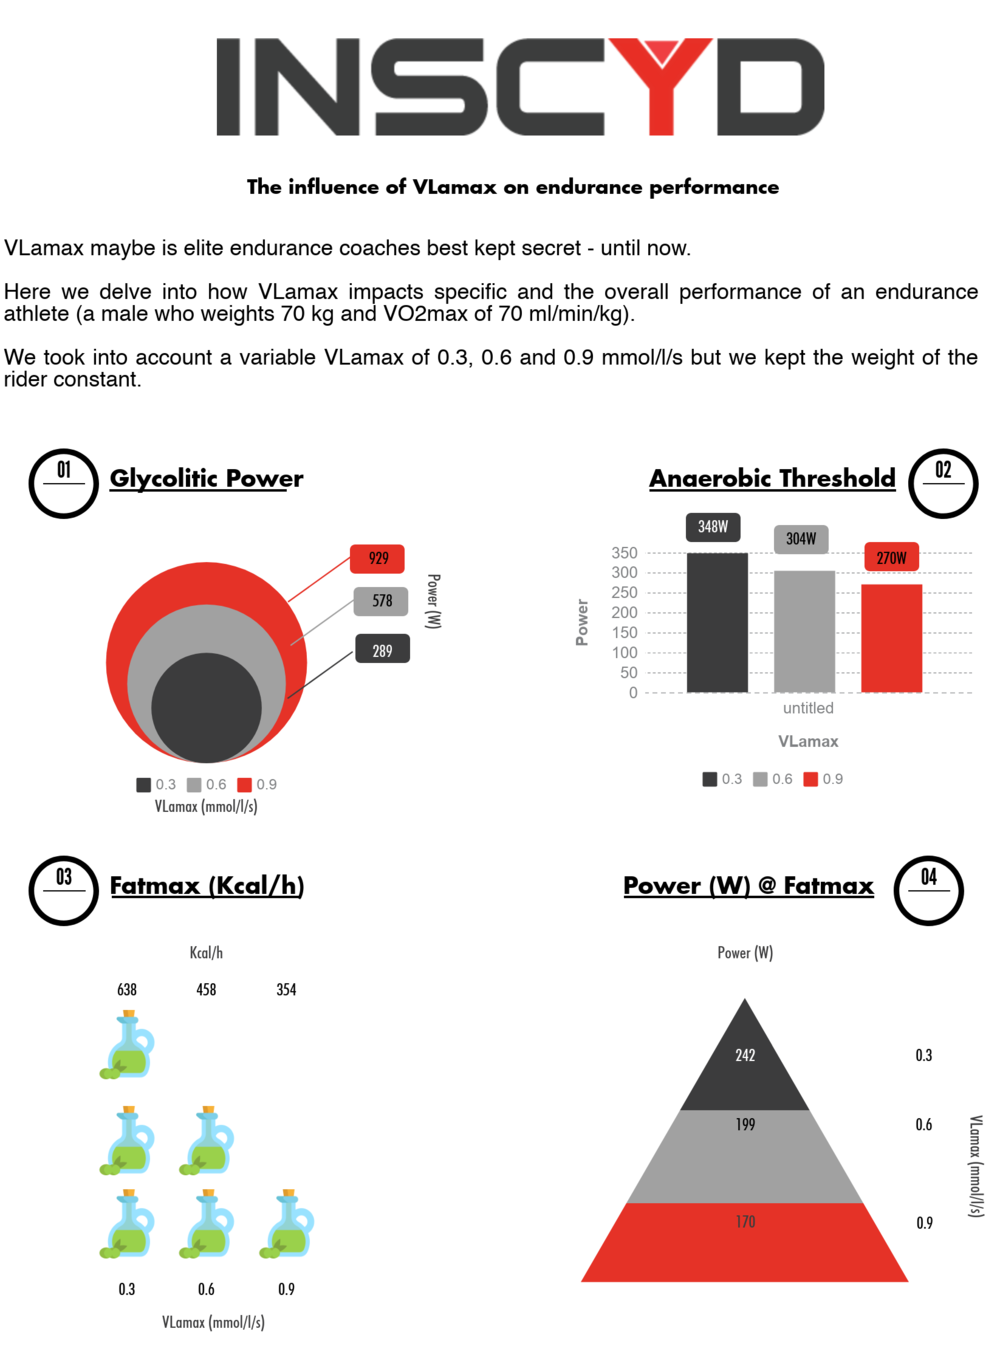 Infographic: The influence of VLamax on endurance performance.